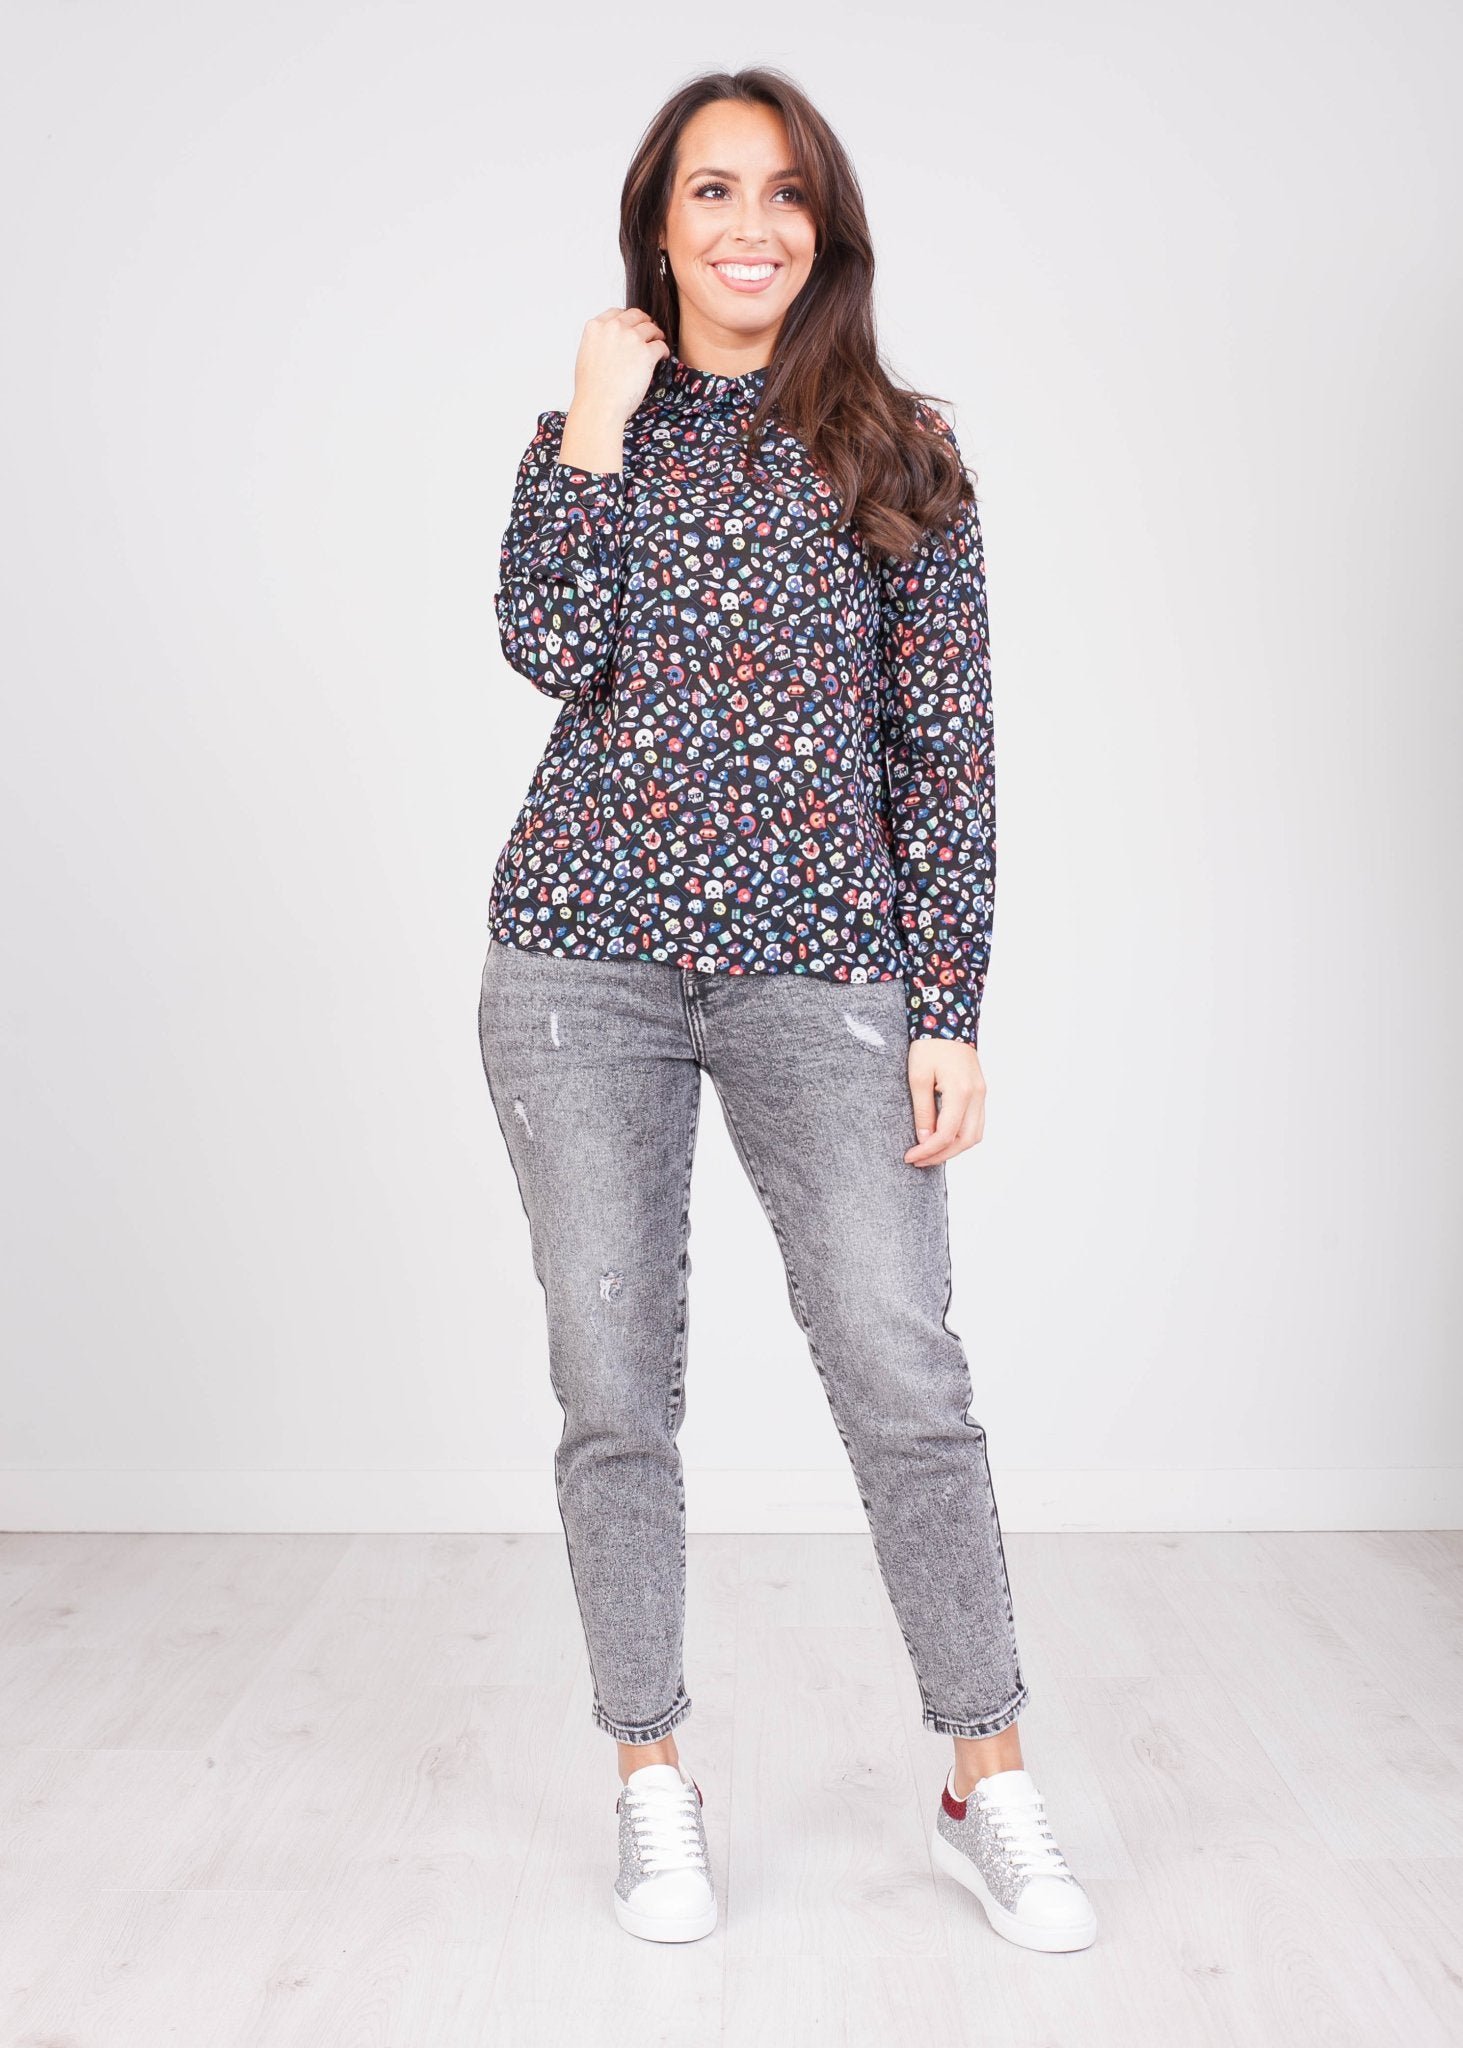 Priya Black Printed Blouse - The Walk in Wardrobe